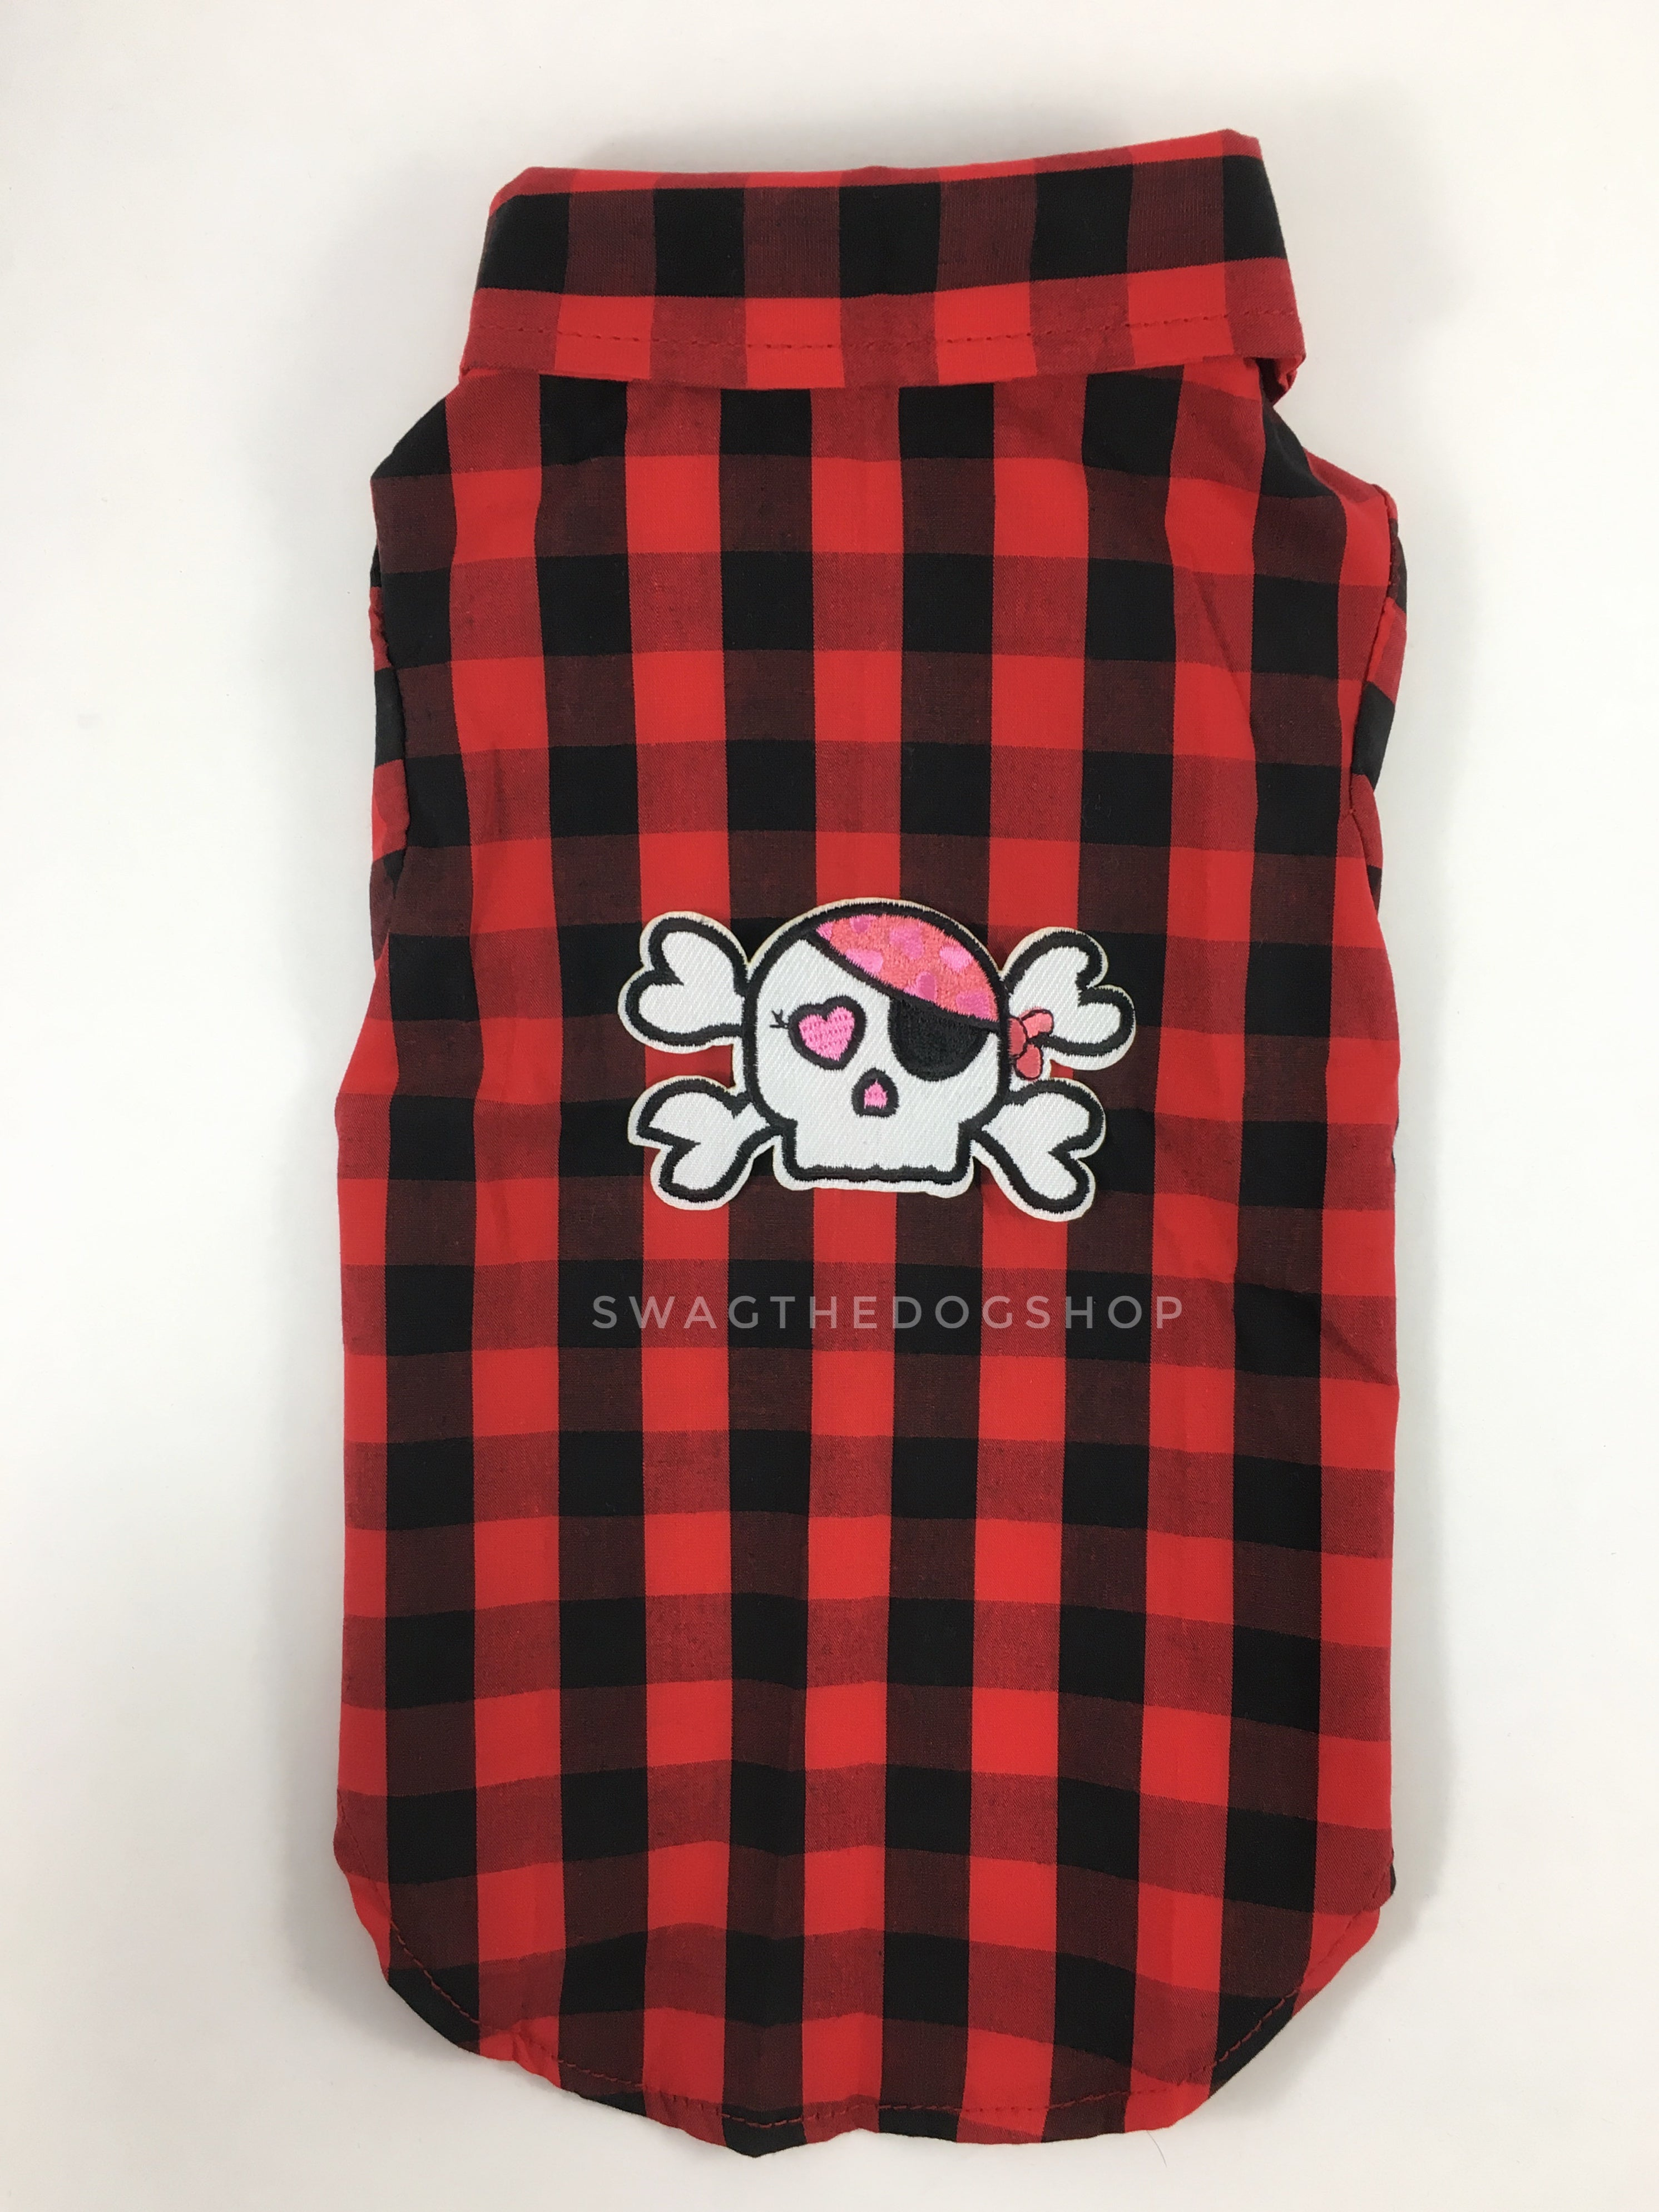 Kenora Summer Shirt - Patch Option of Badass Skull on the Back. Black and Red Checker Pattern Gingham Shirt